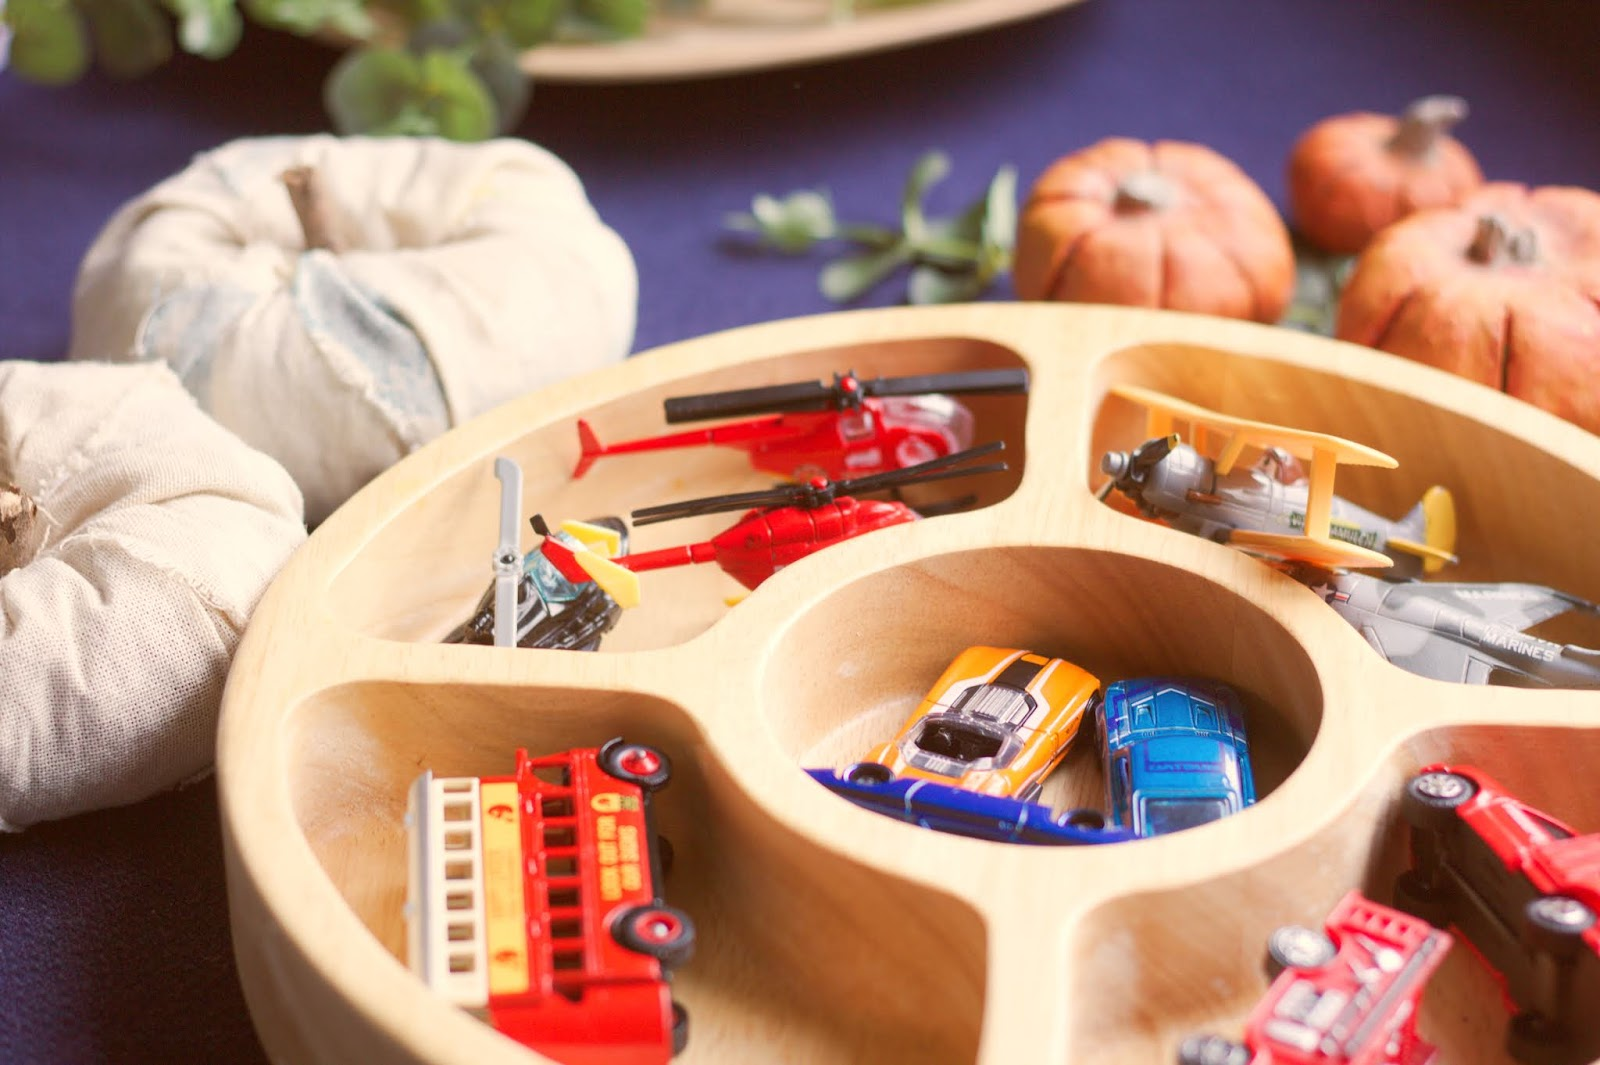 Montessori-inspired hands-on activities with vehicles. How to make the most out of the toys